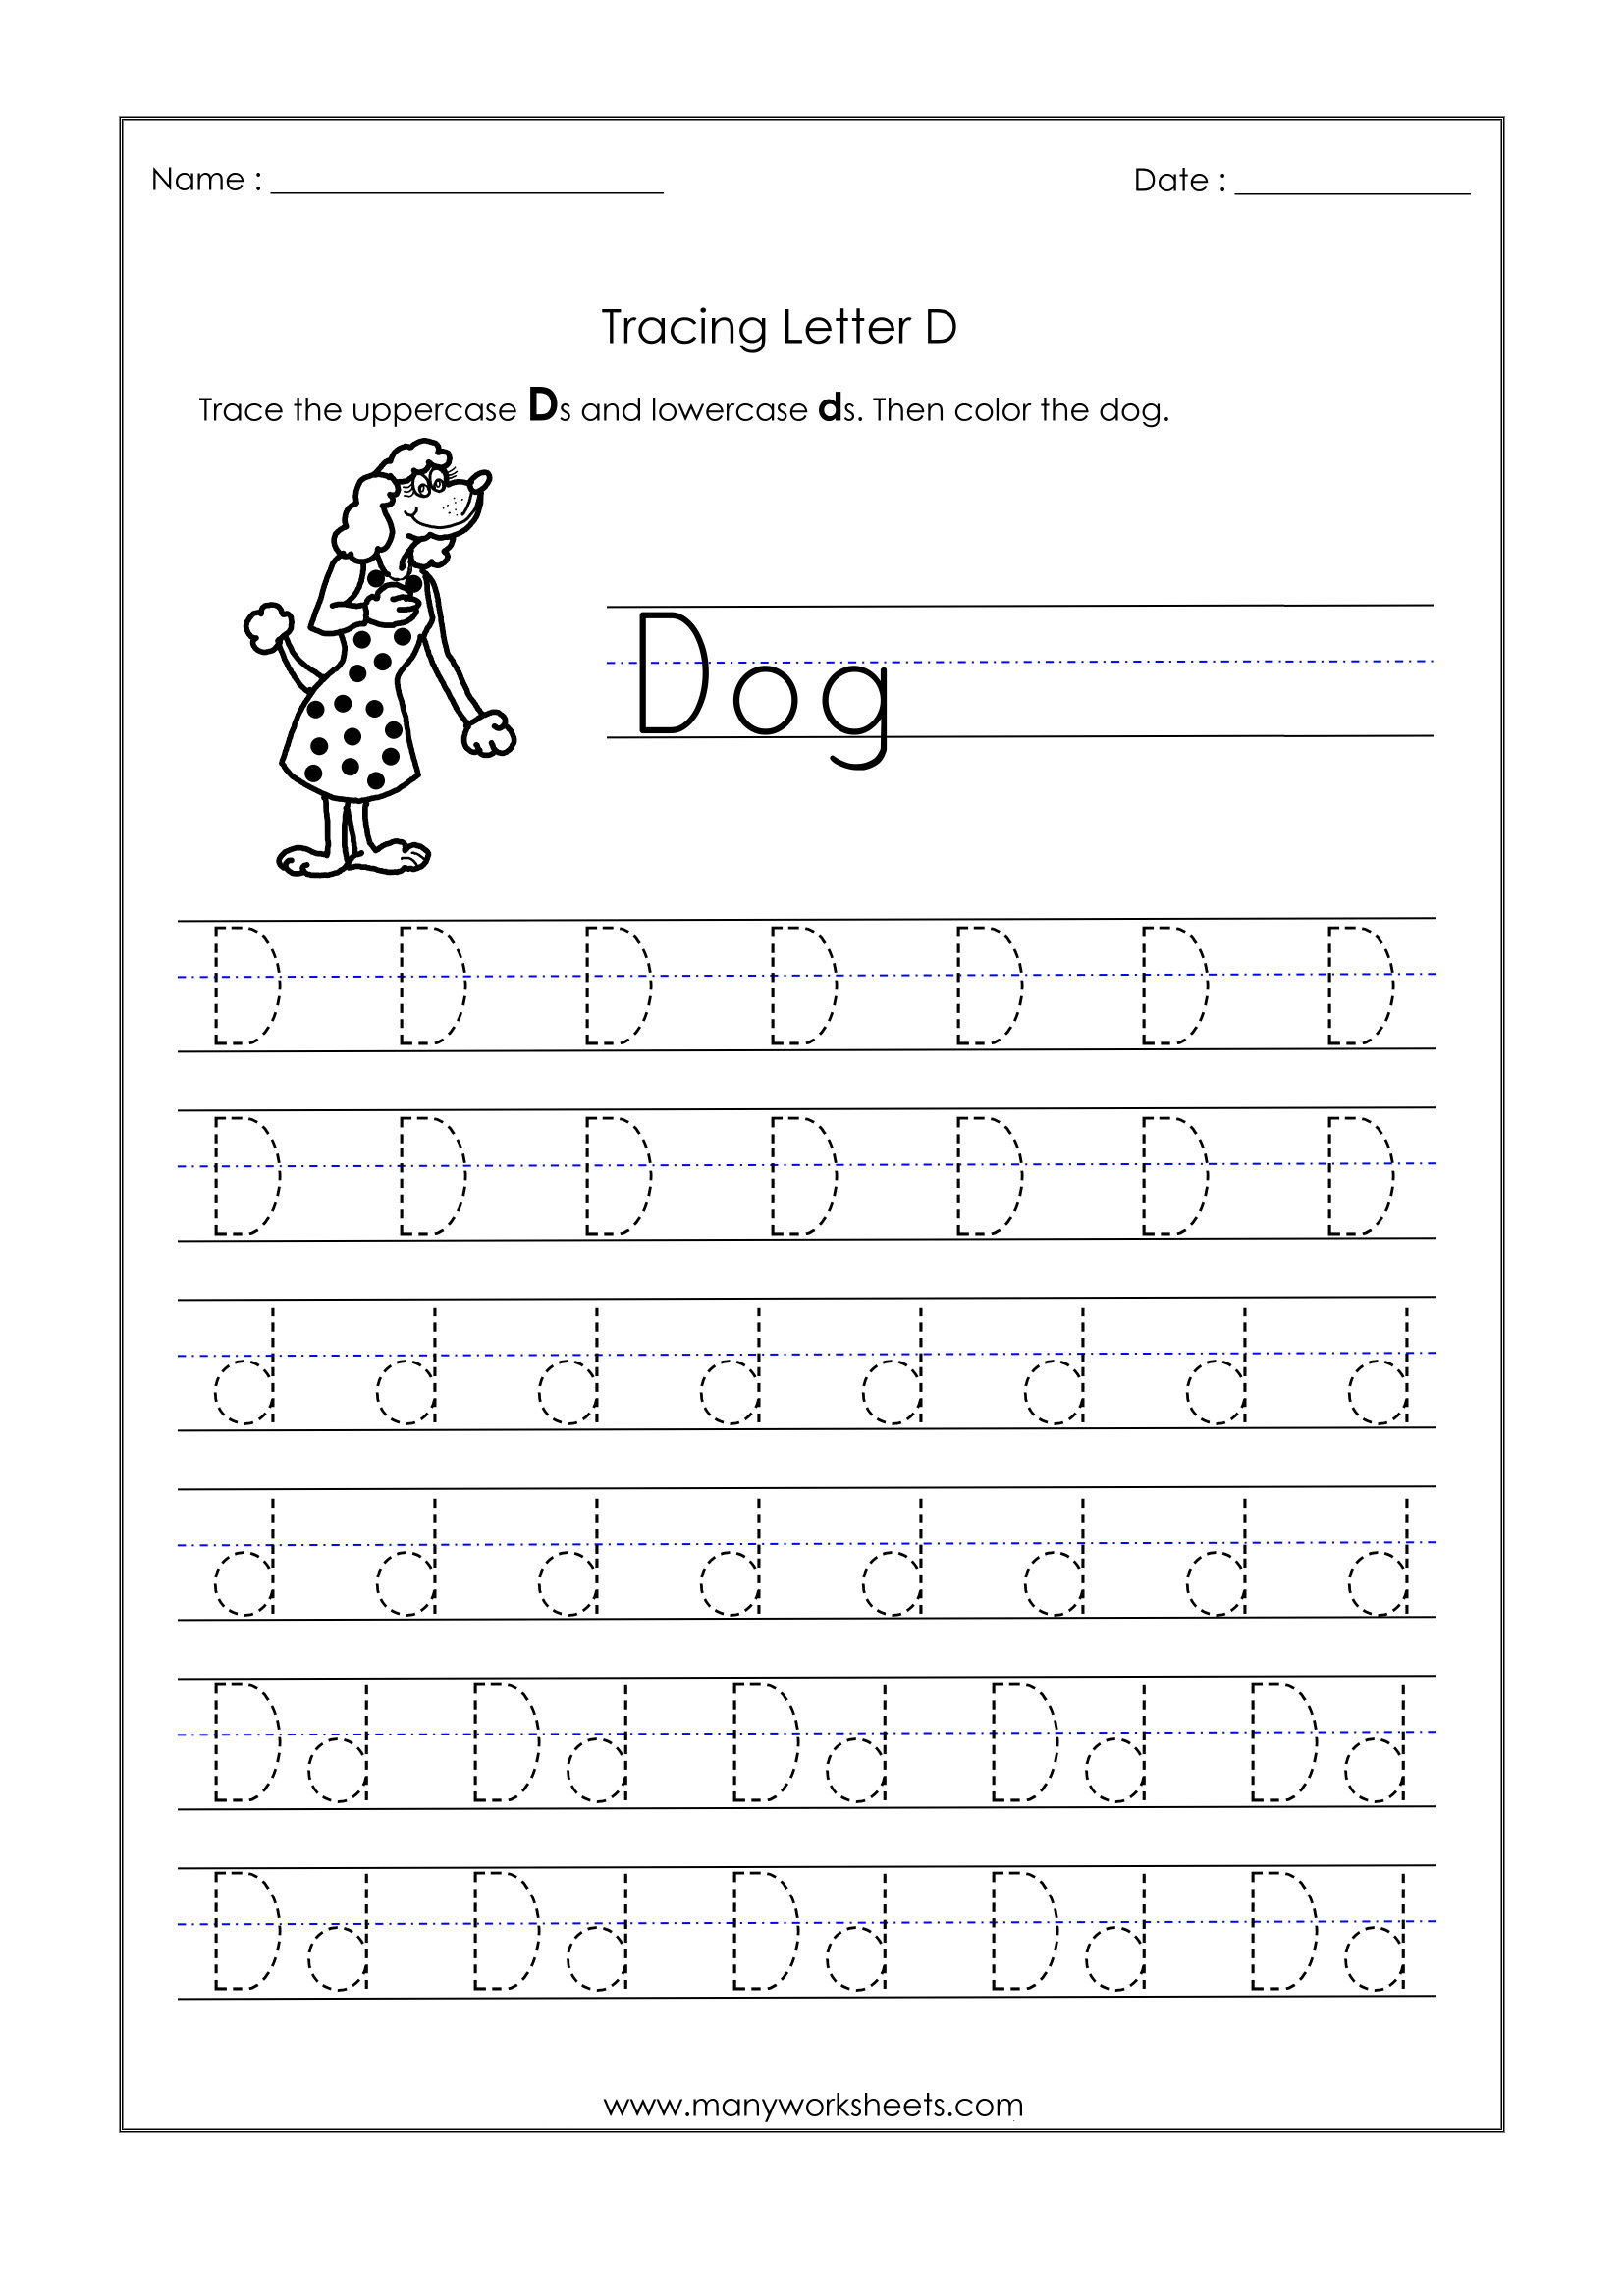 58 Staggering Alphabet Tracing Worksheets Image Inspirations inside Alphabet D Tracing